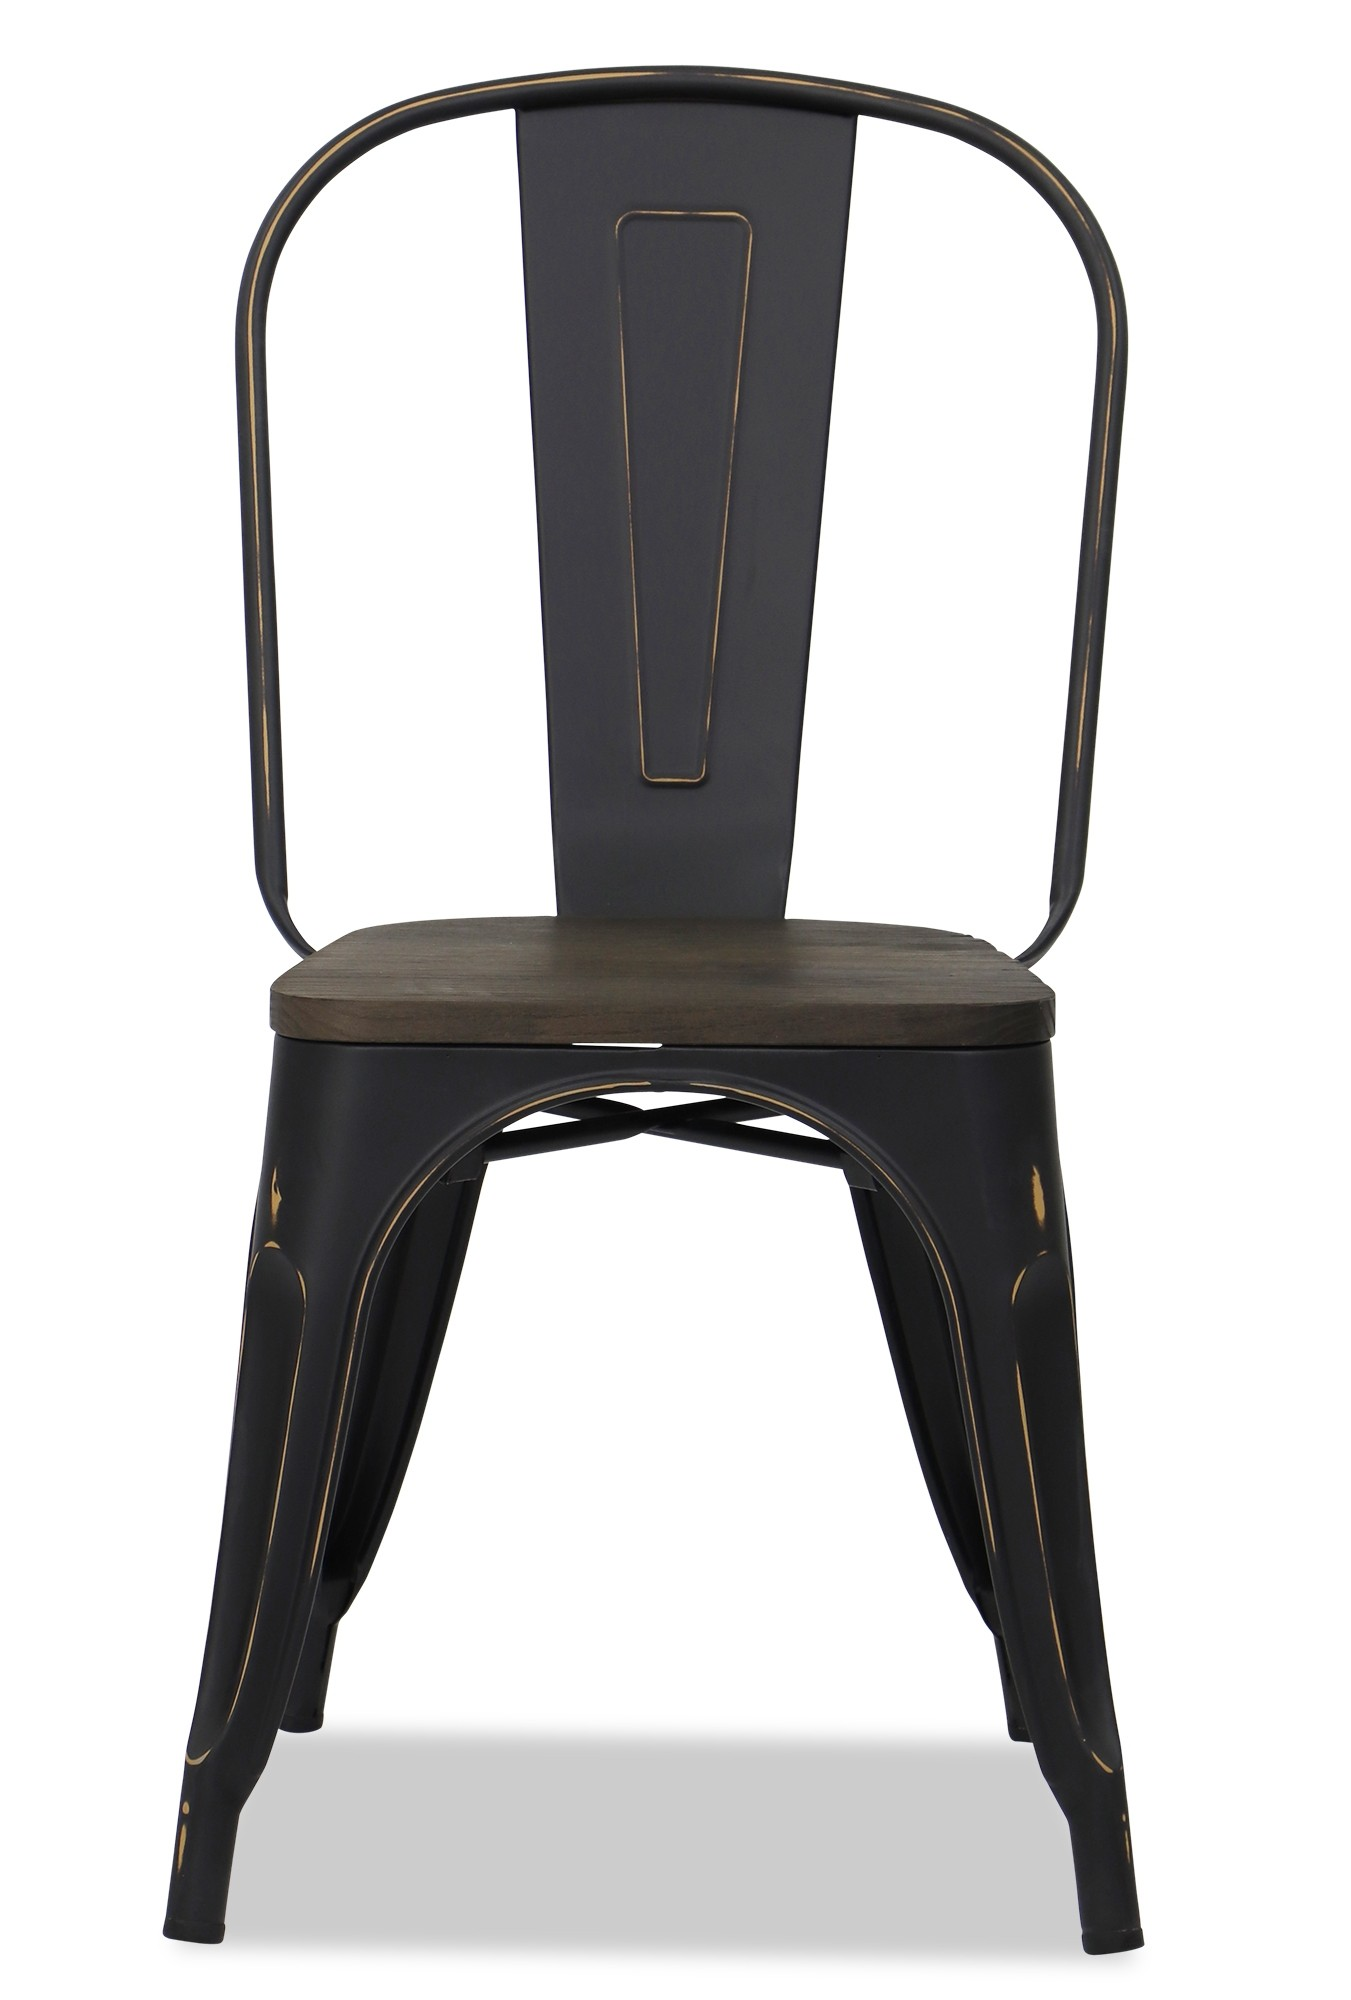 Retro Metal Chair With Wooden Seat In Antique Black